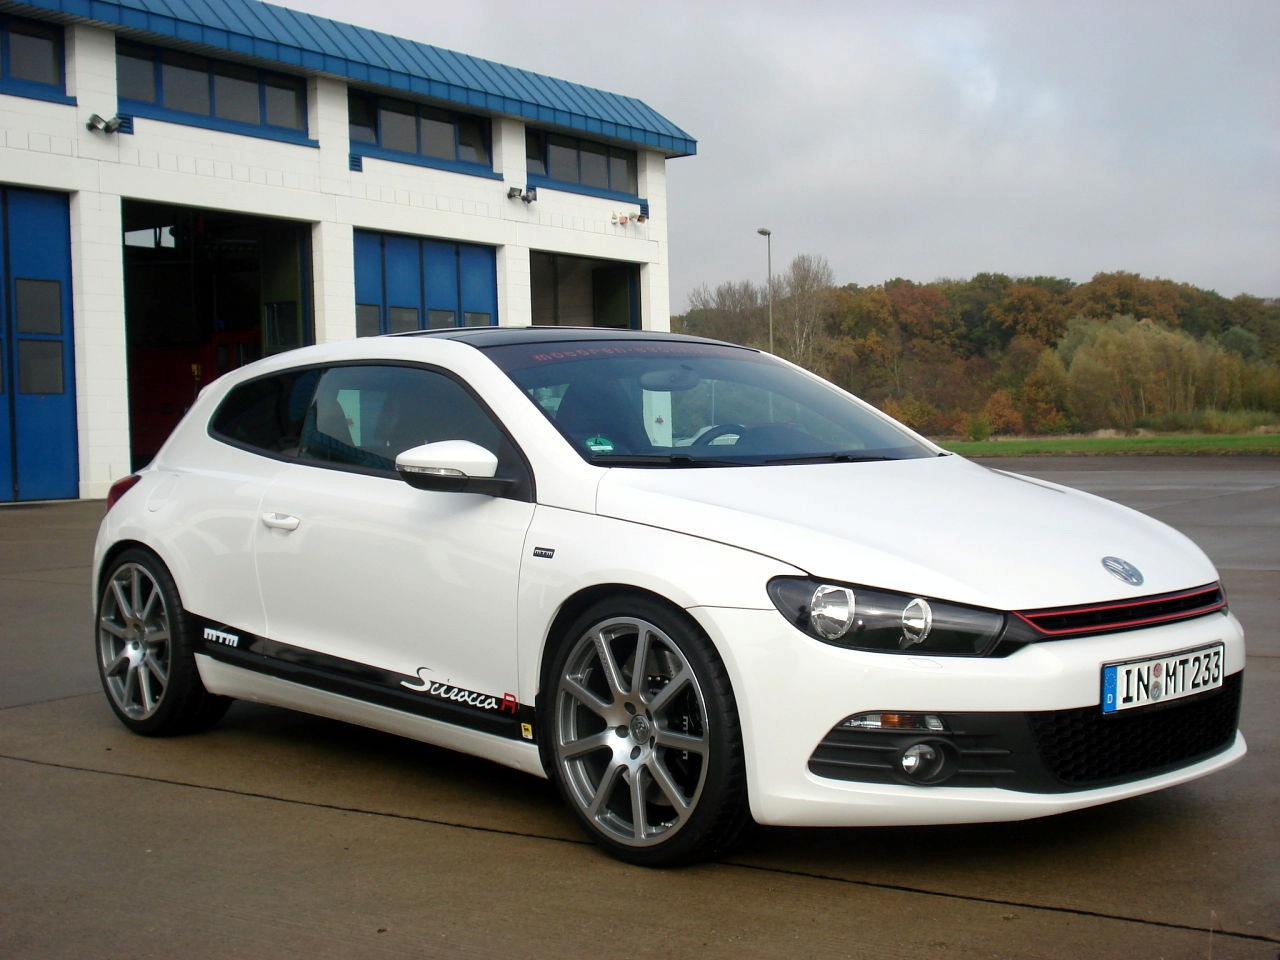 Volkswagen Scirocco Photos Review Automotive Sport